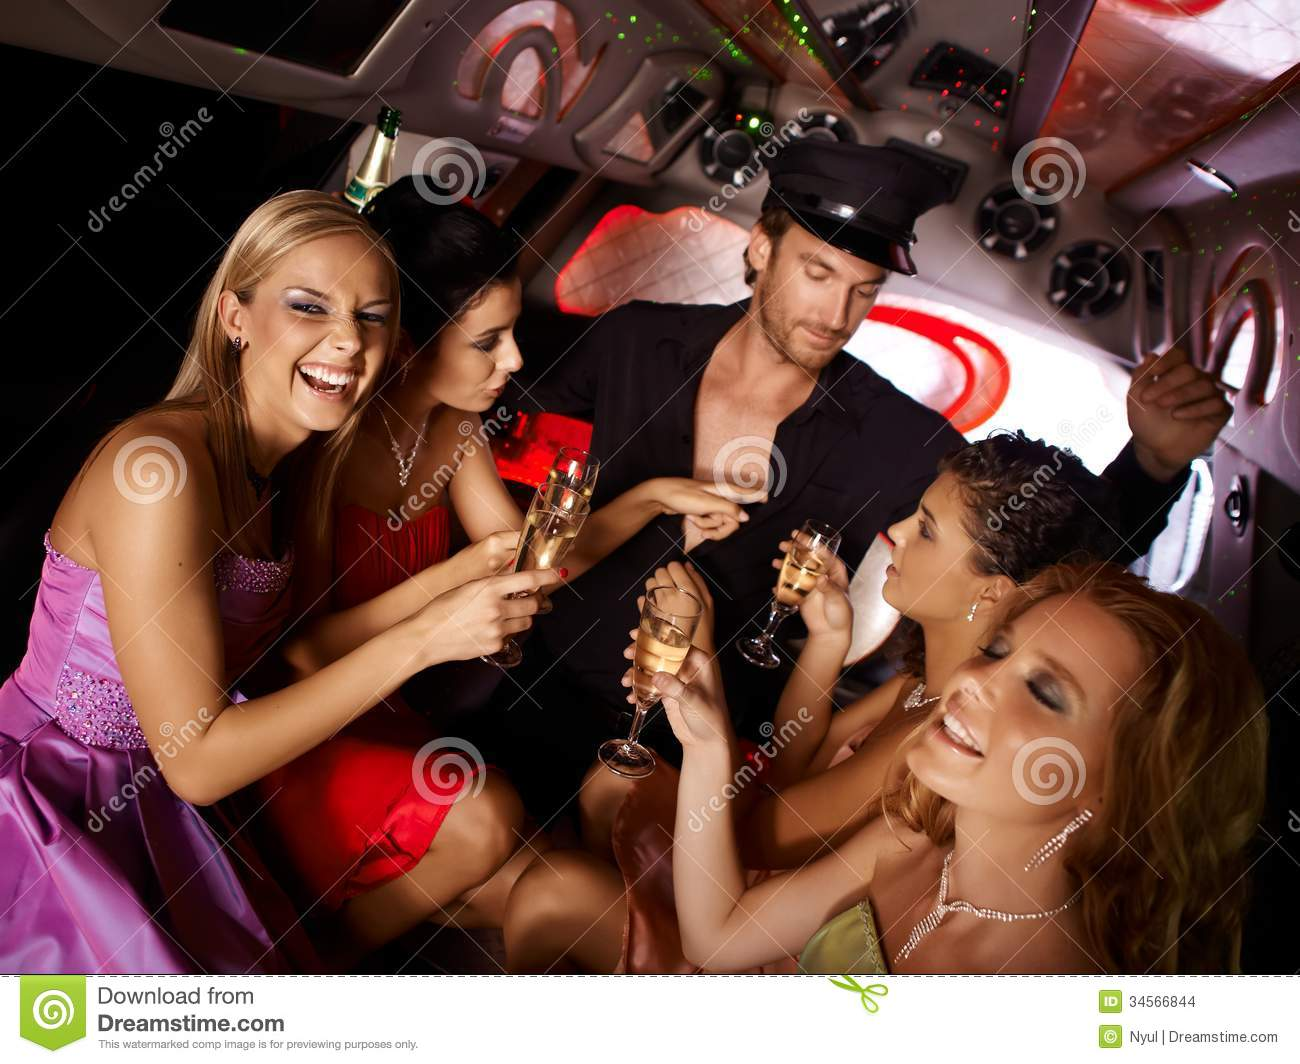 Explore The Beauty Of Caribbean: Hot Bachelorette Party In Limo Stock Photo